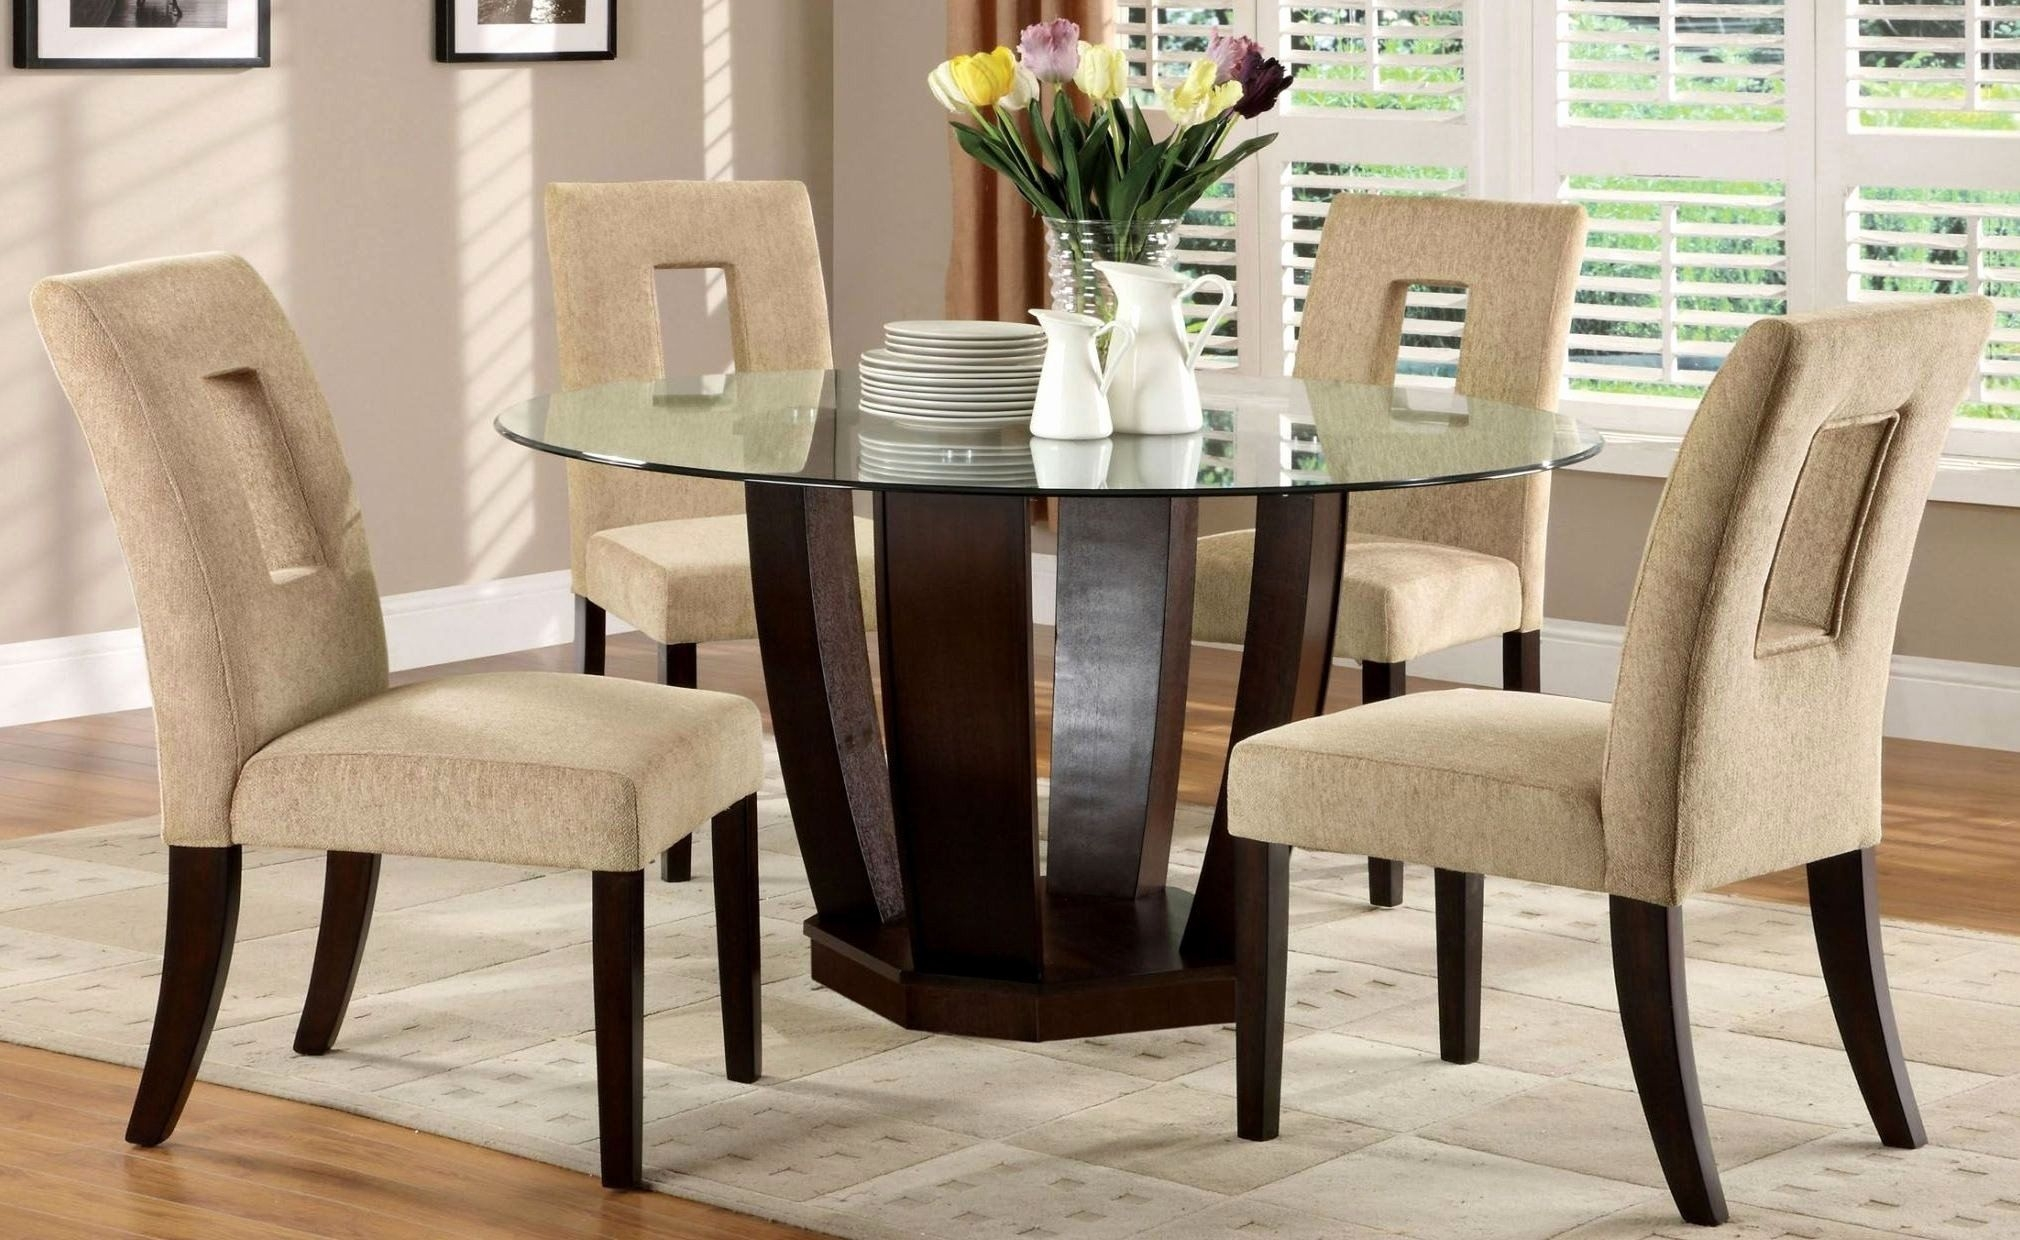 Furniture of America Valyria 5-Piece Round Dining Table Set with 10mm Tempered Glass Top & Round Glass Dining Room Table Sets - Foter